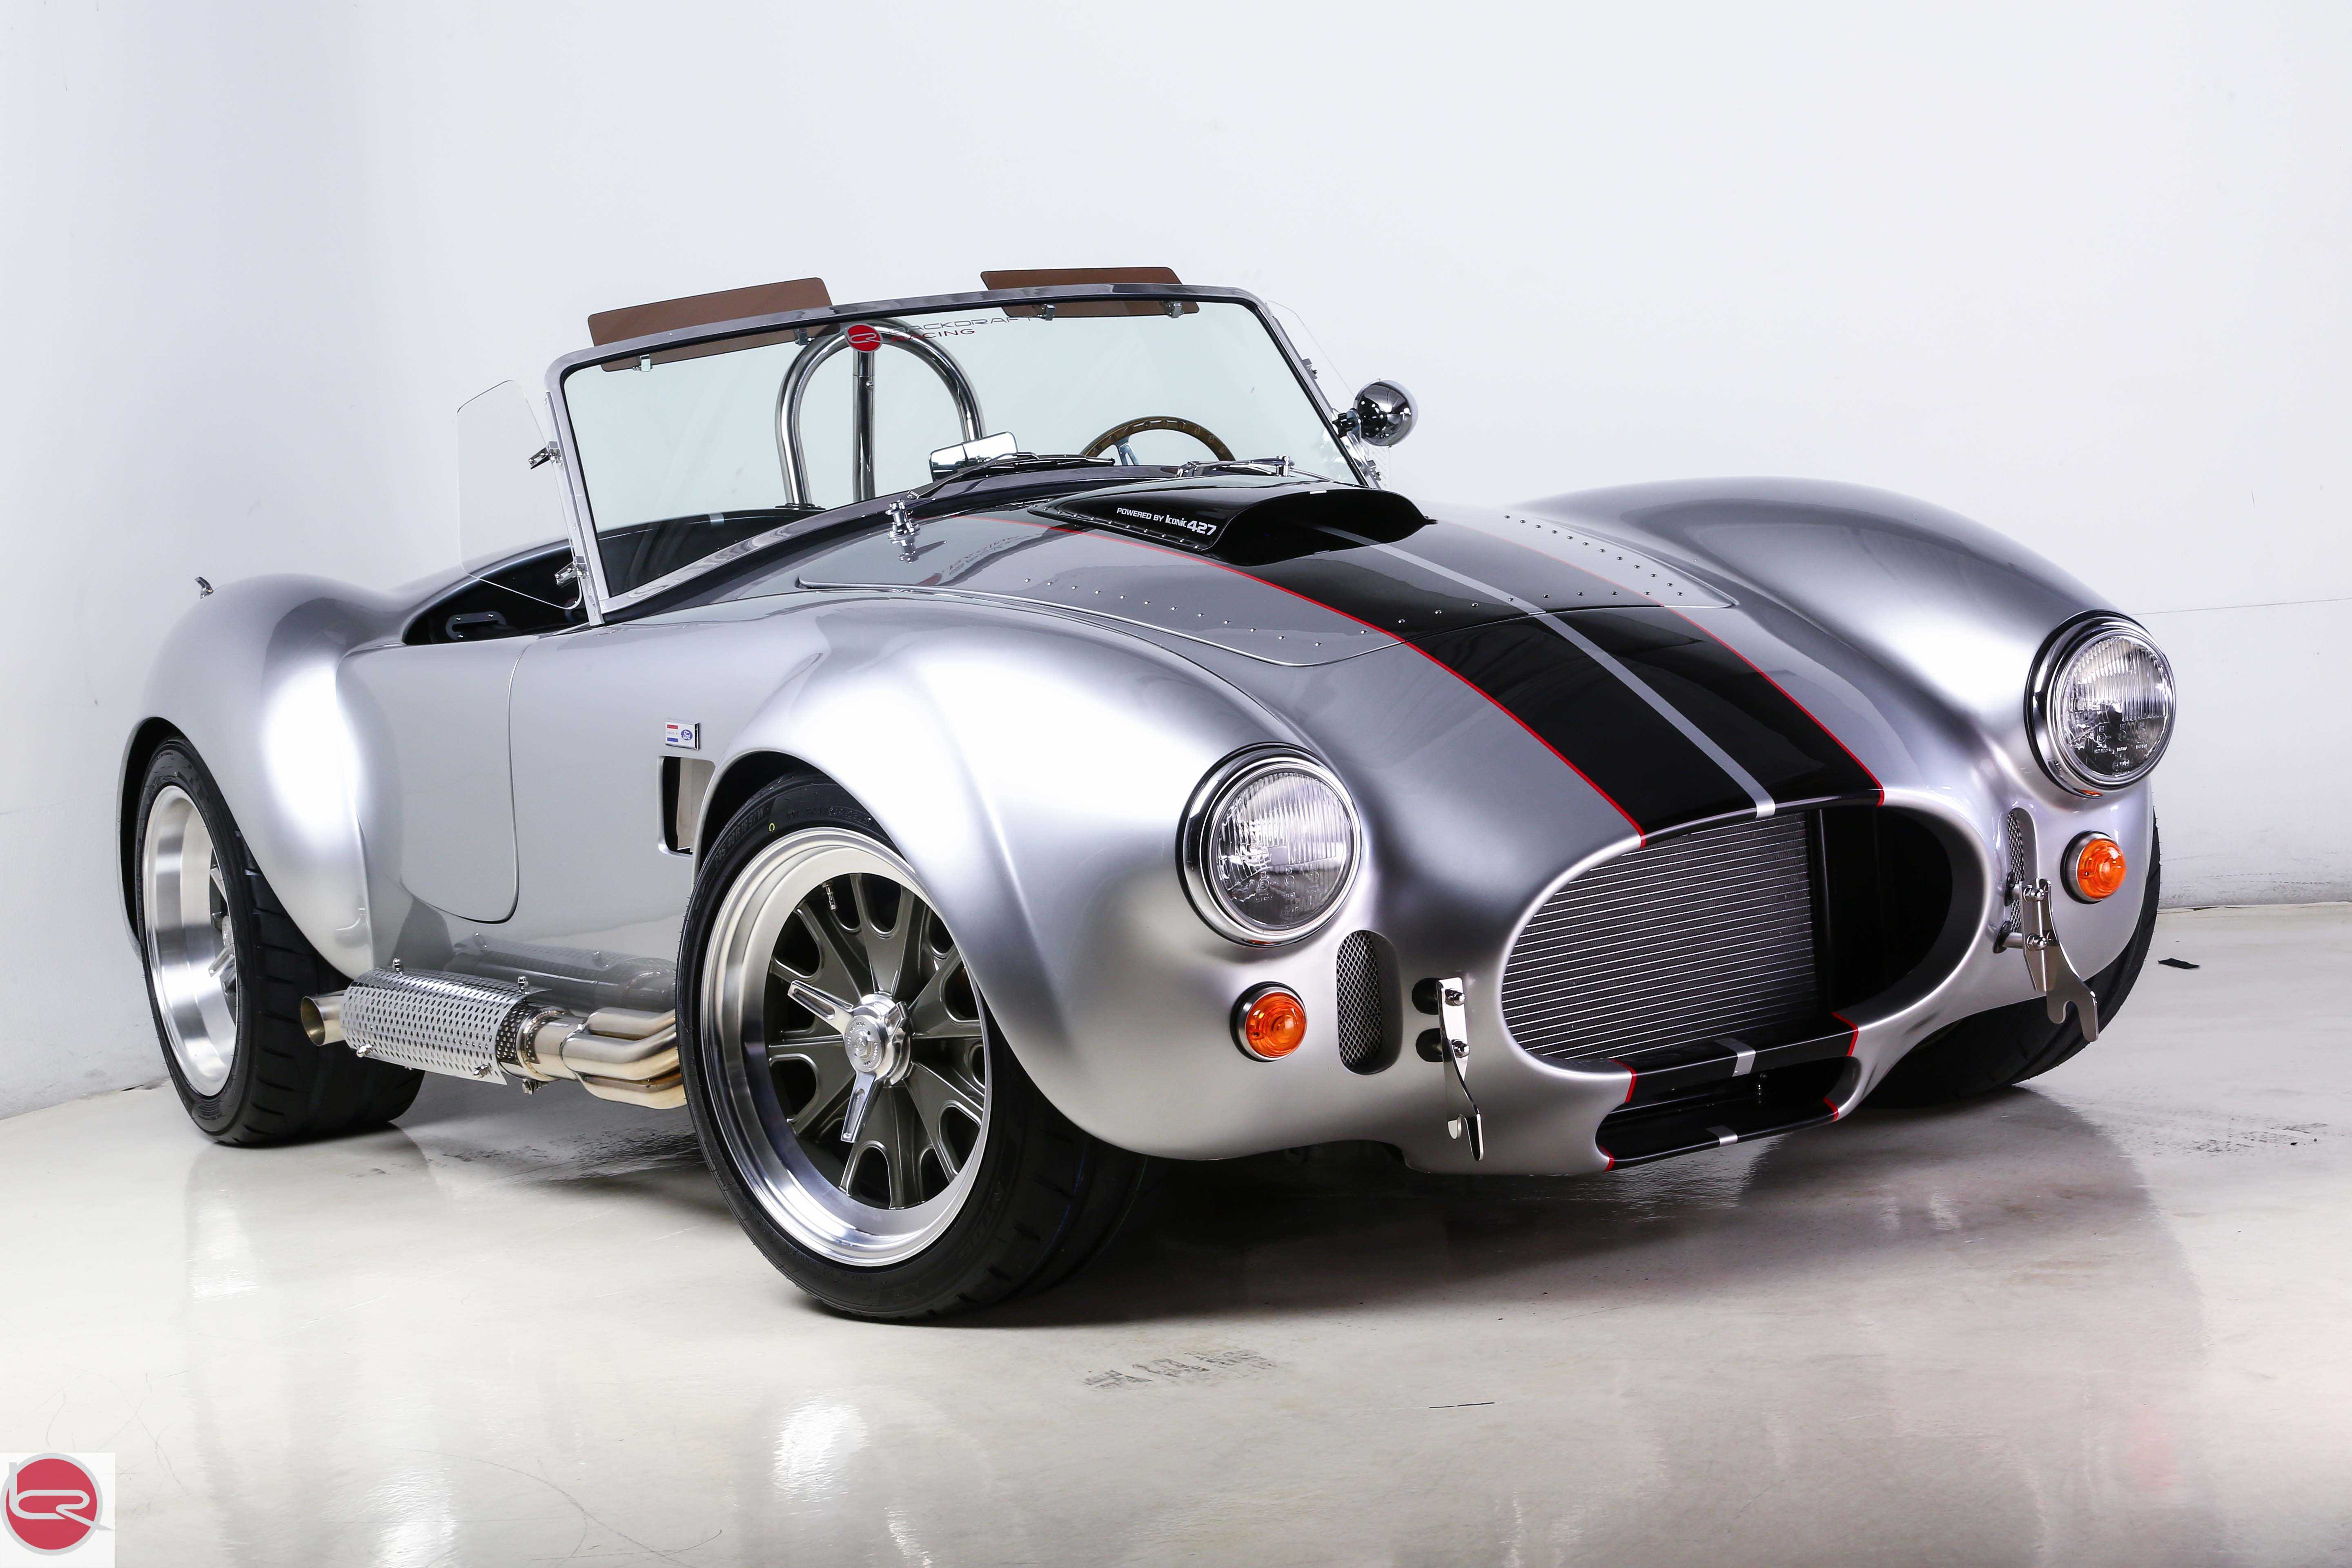 1965 ac cobra replica for sale in boynton beach fl ae9bmaah7g1mt1043. Black Bedroom Furniture Sets. Home Design Ideas